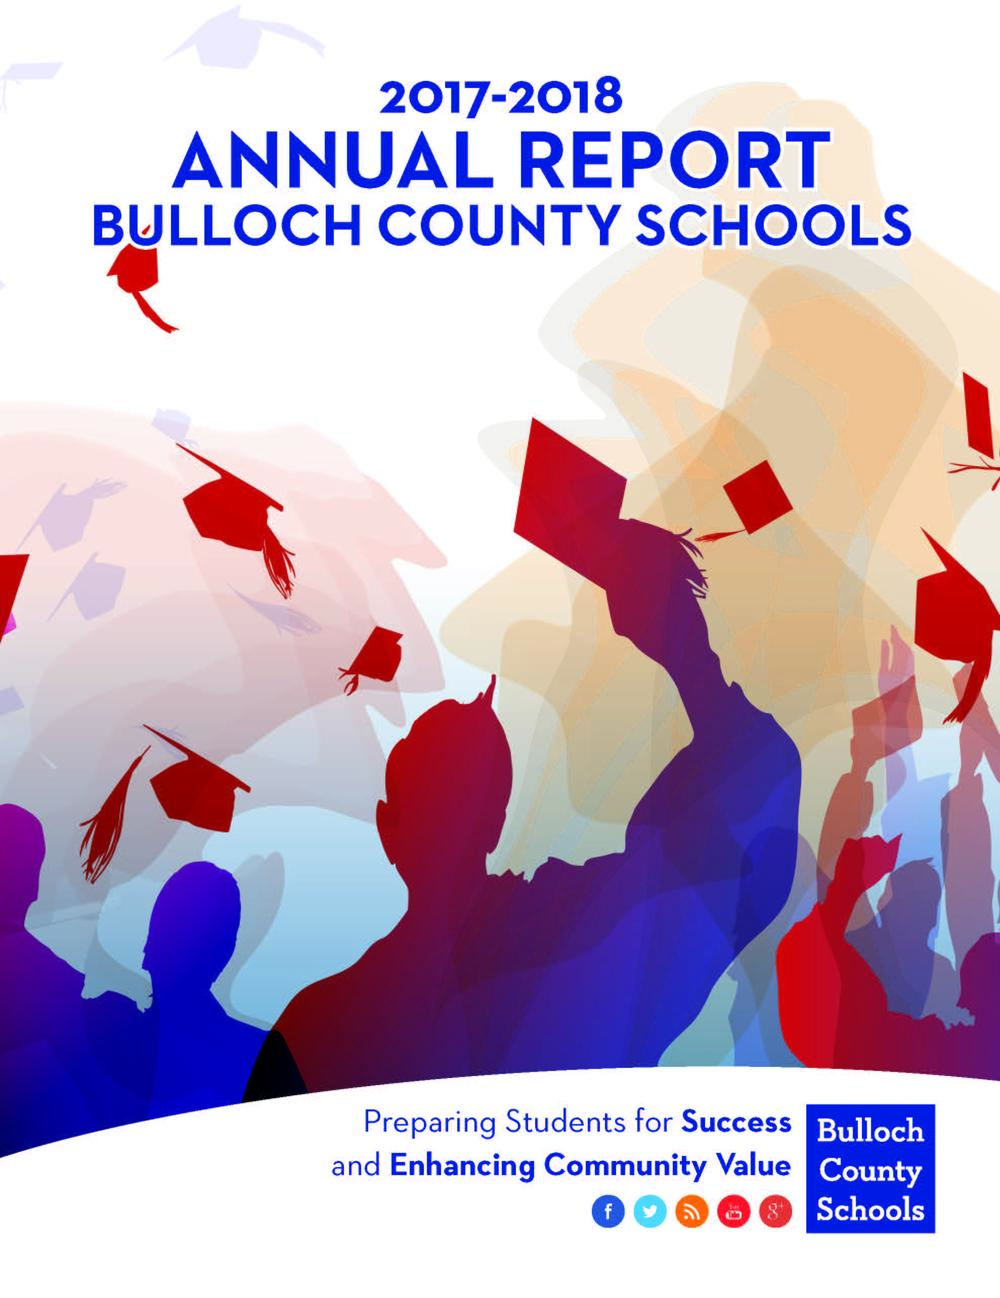 Bulloch County Schools Annual Report Cover